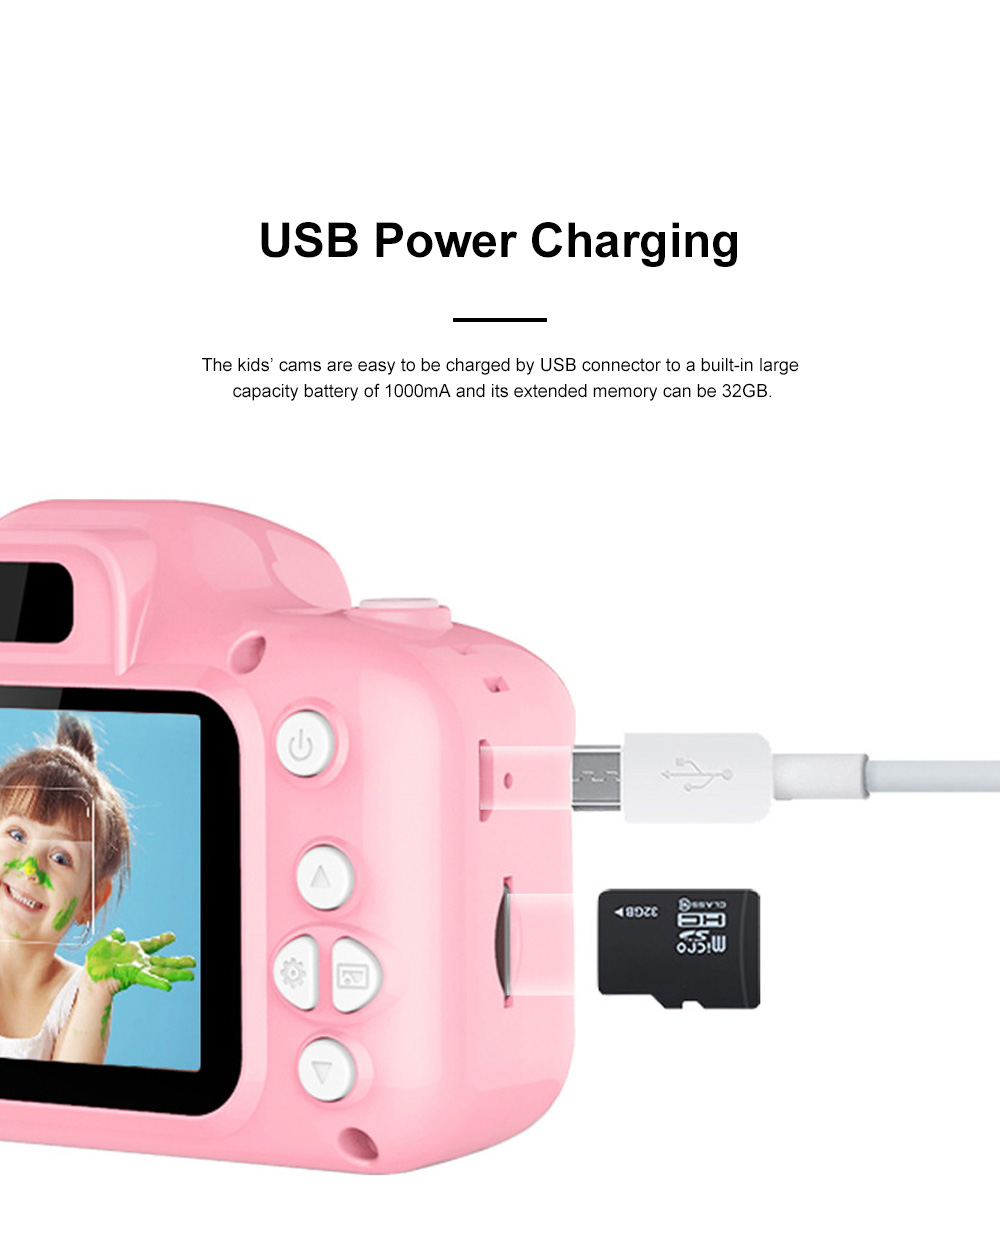 Mini Digital Camera for Children's Gift Environment-friendly ABS Funny Kids' Cams Durable Outdoor Video Camera Portable Cartoon Camera 6